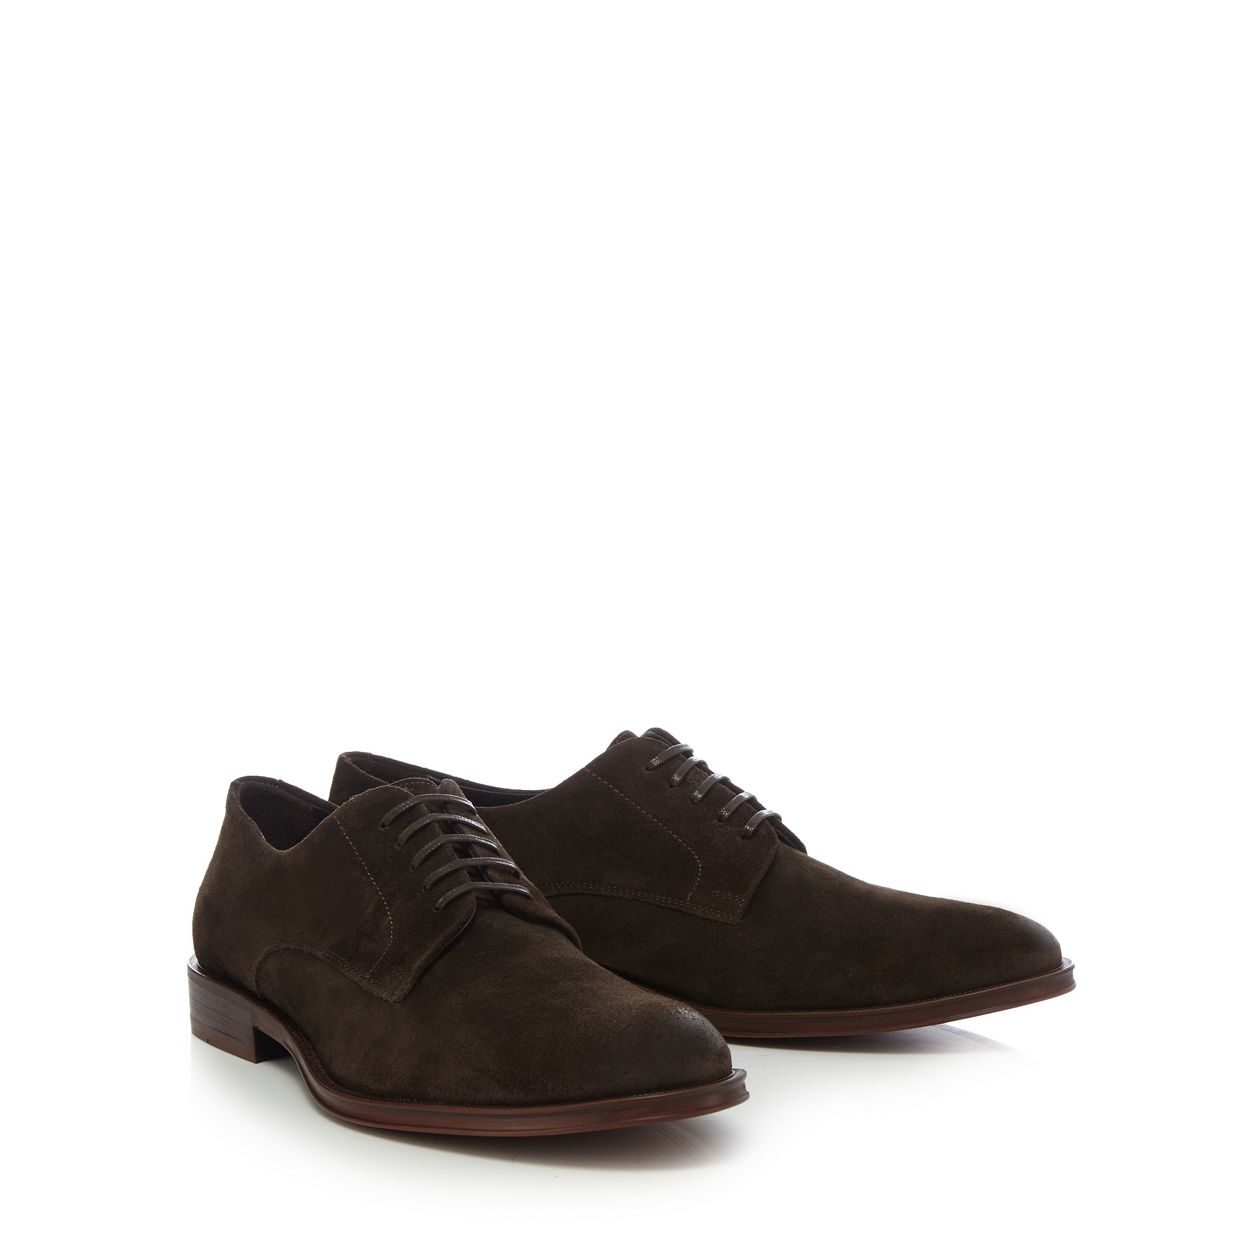 Hammond & Co. by Patrick Grant Brown suede 'Albany' derby shoes